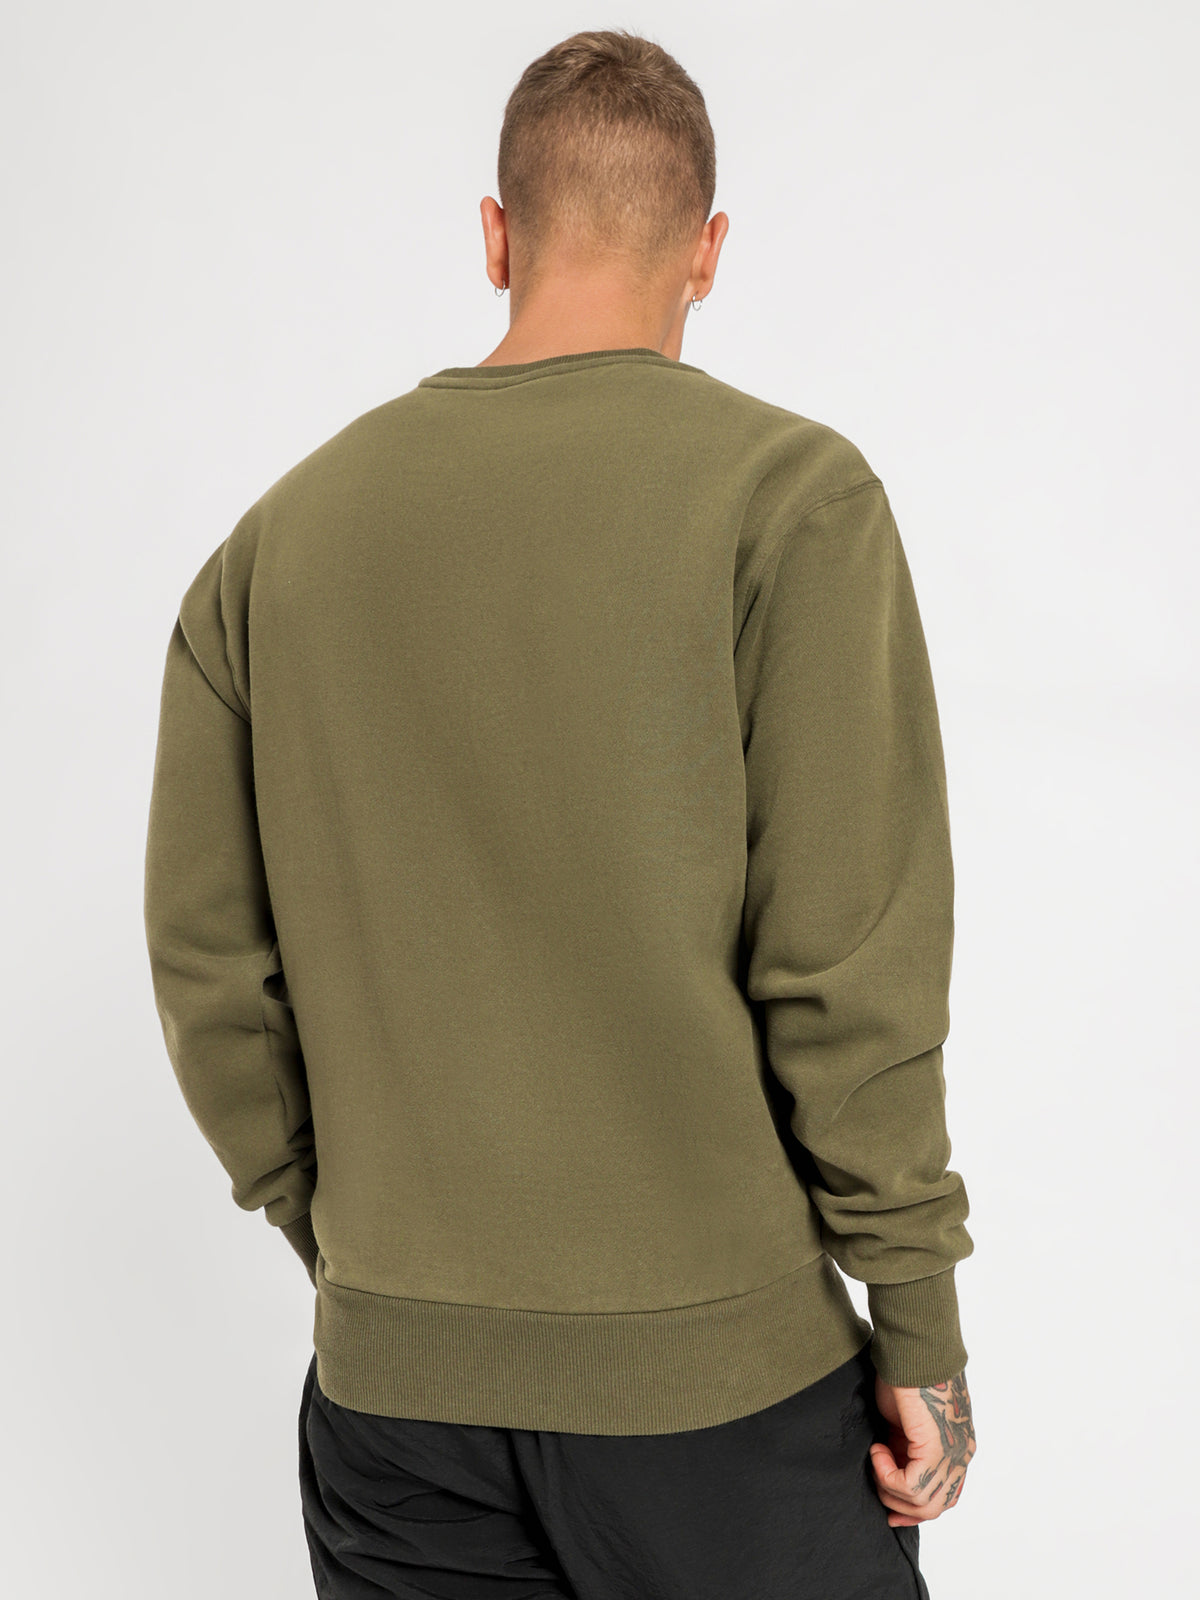 Diveria Sweatshirt in Khaki